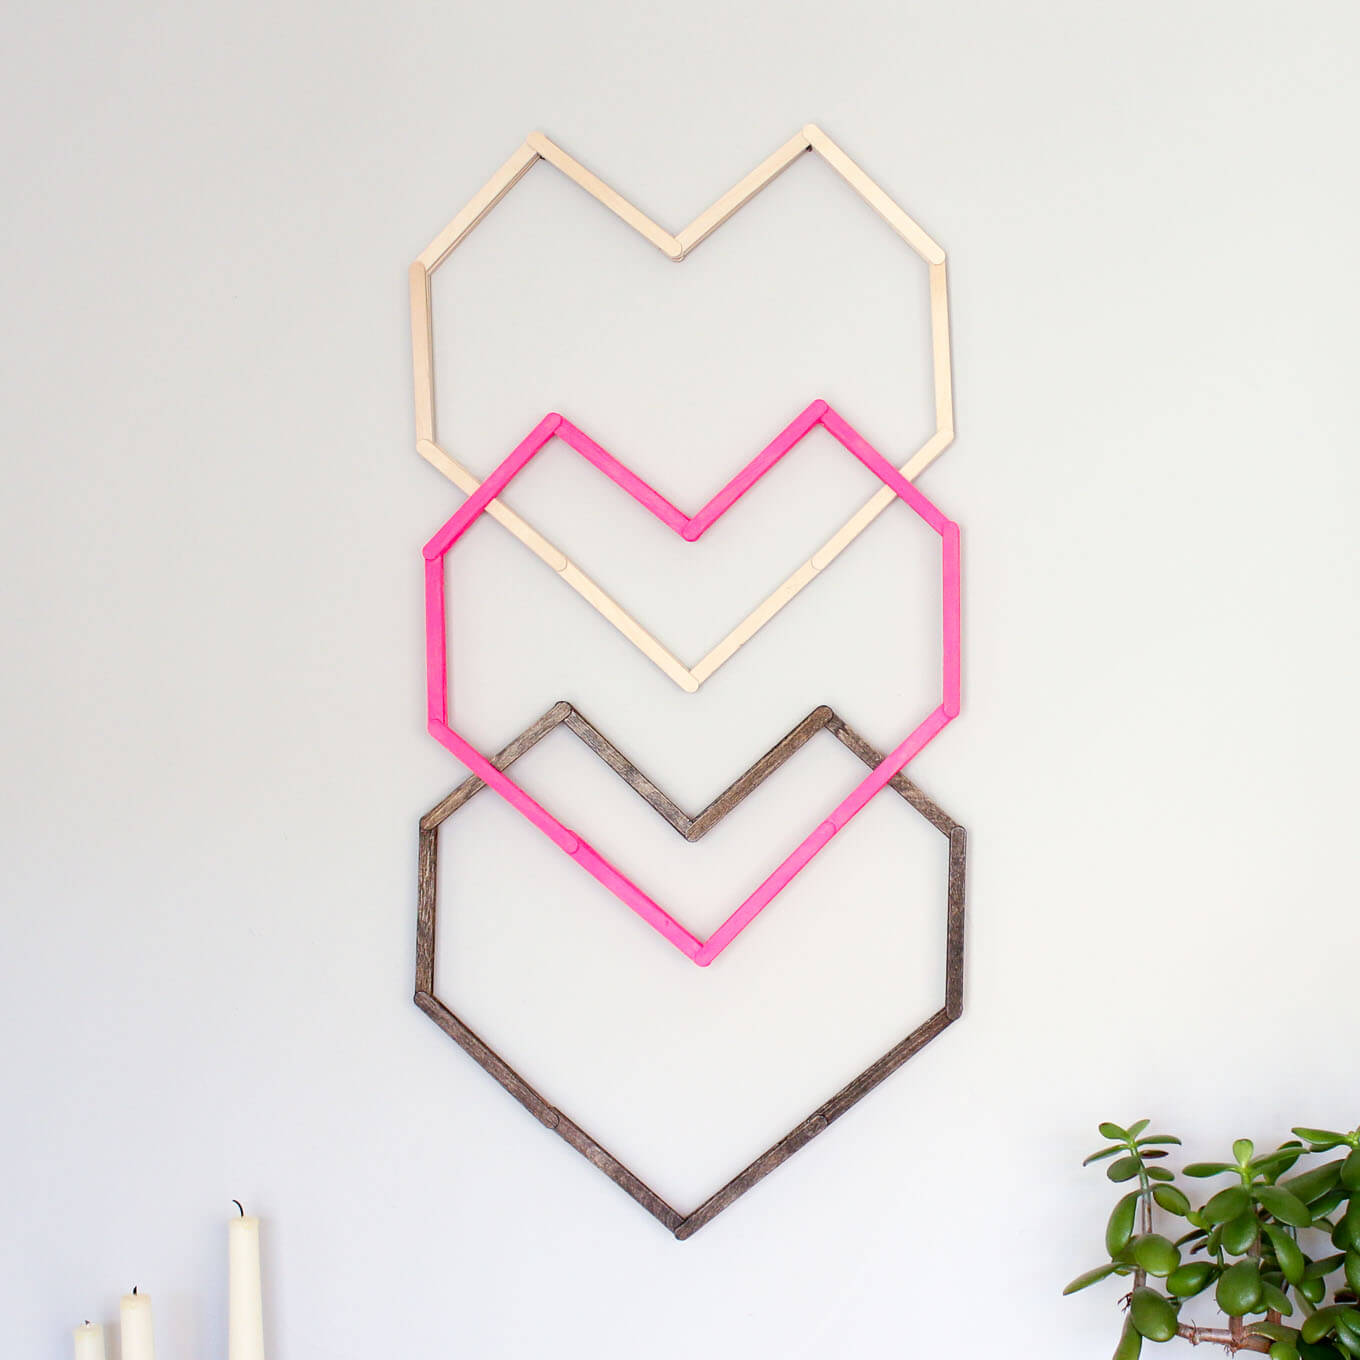 Geometric Heart Diy Wall Art With Popsicle Sticks